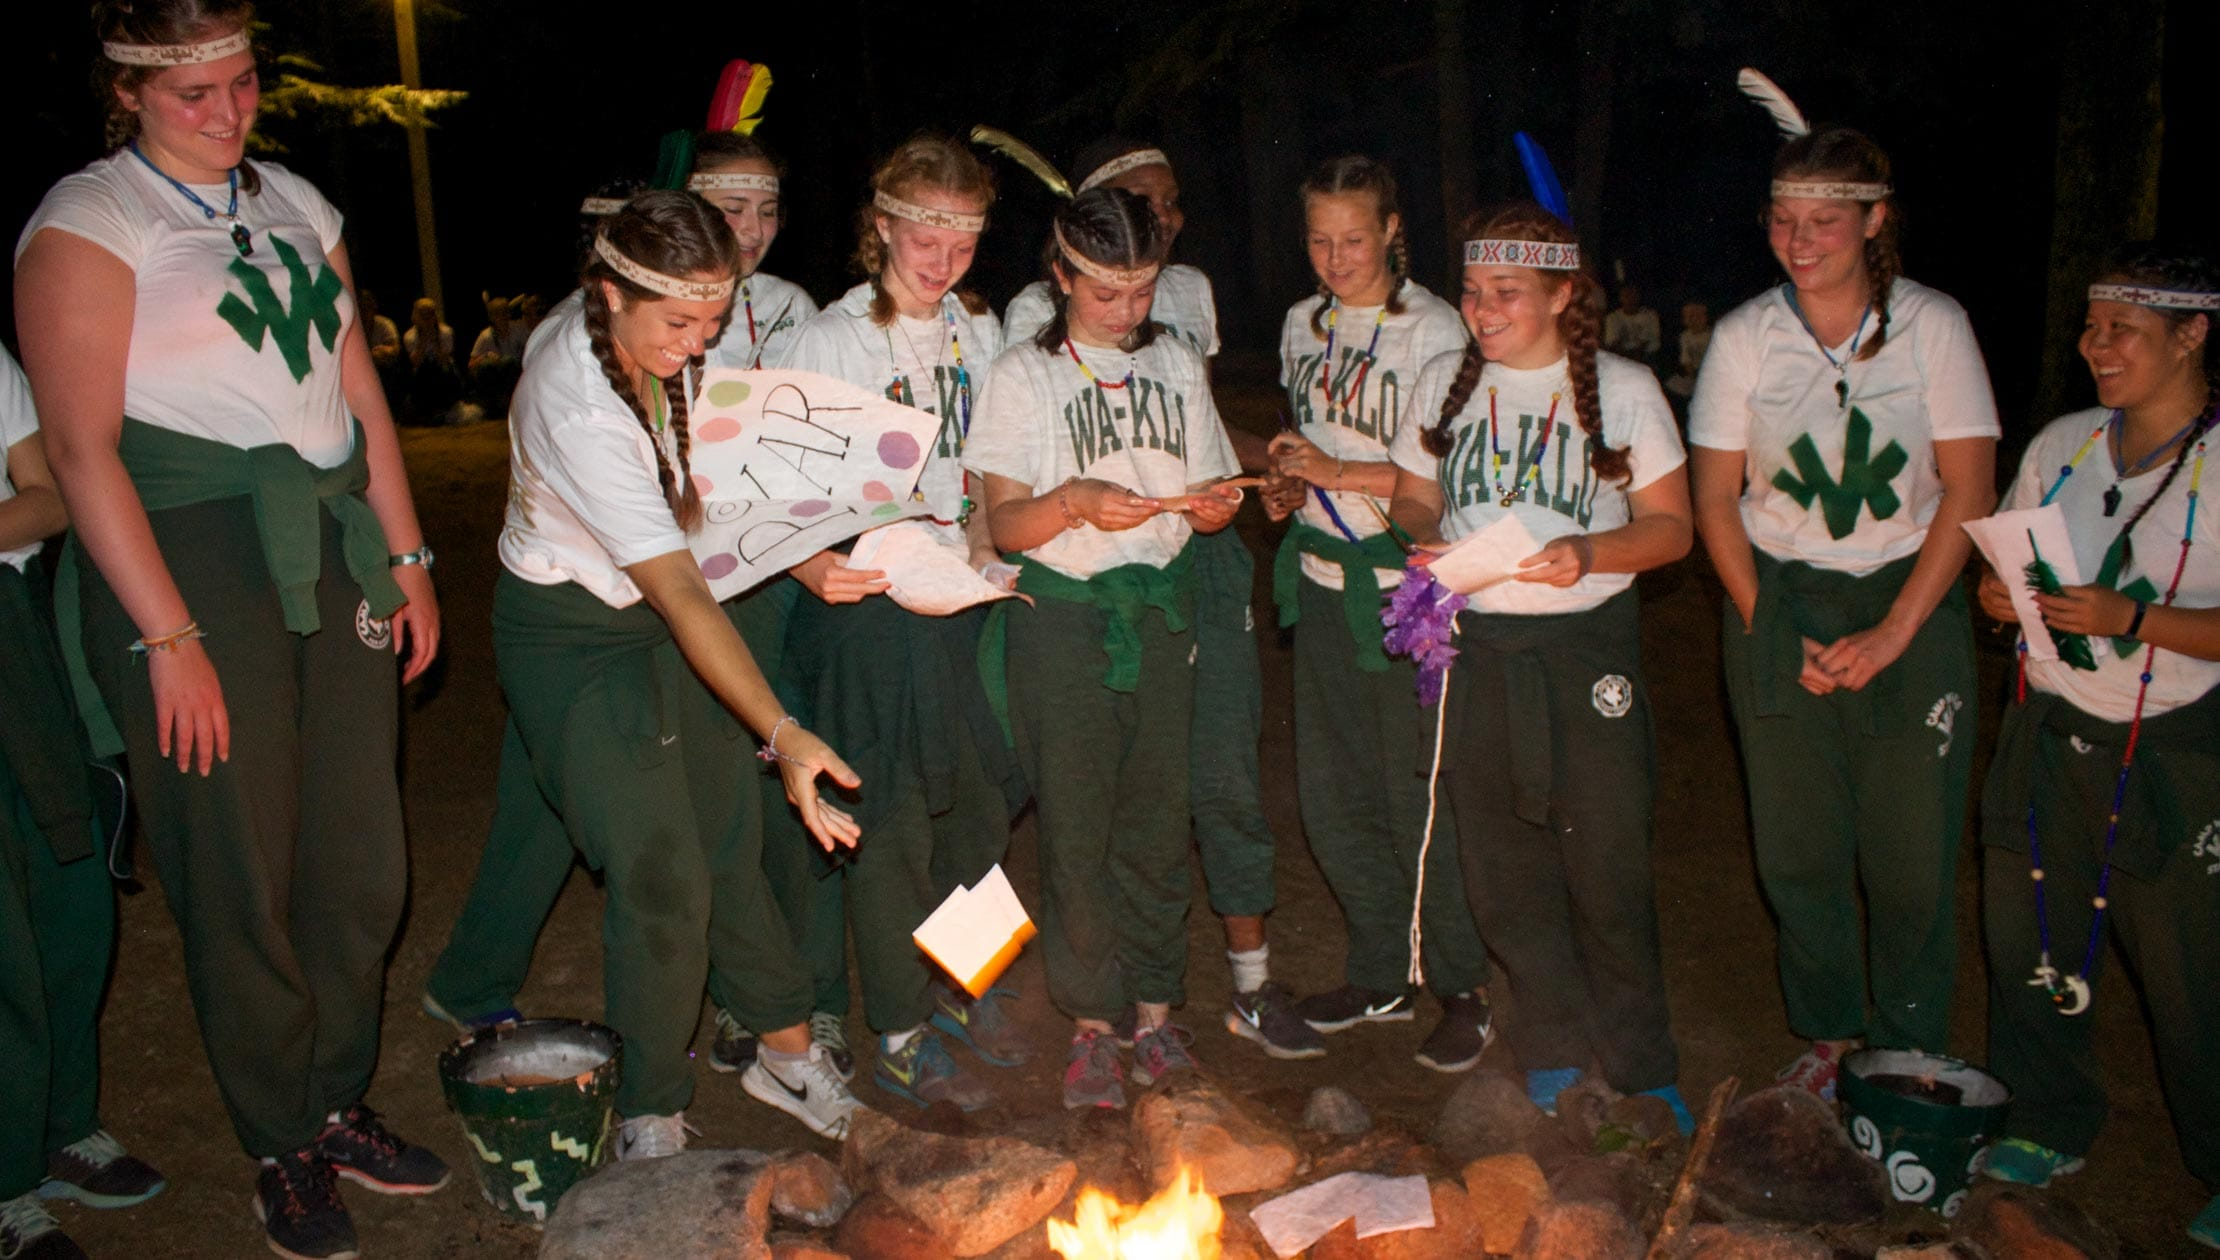 Girls burning notes at the council fire